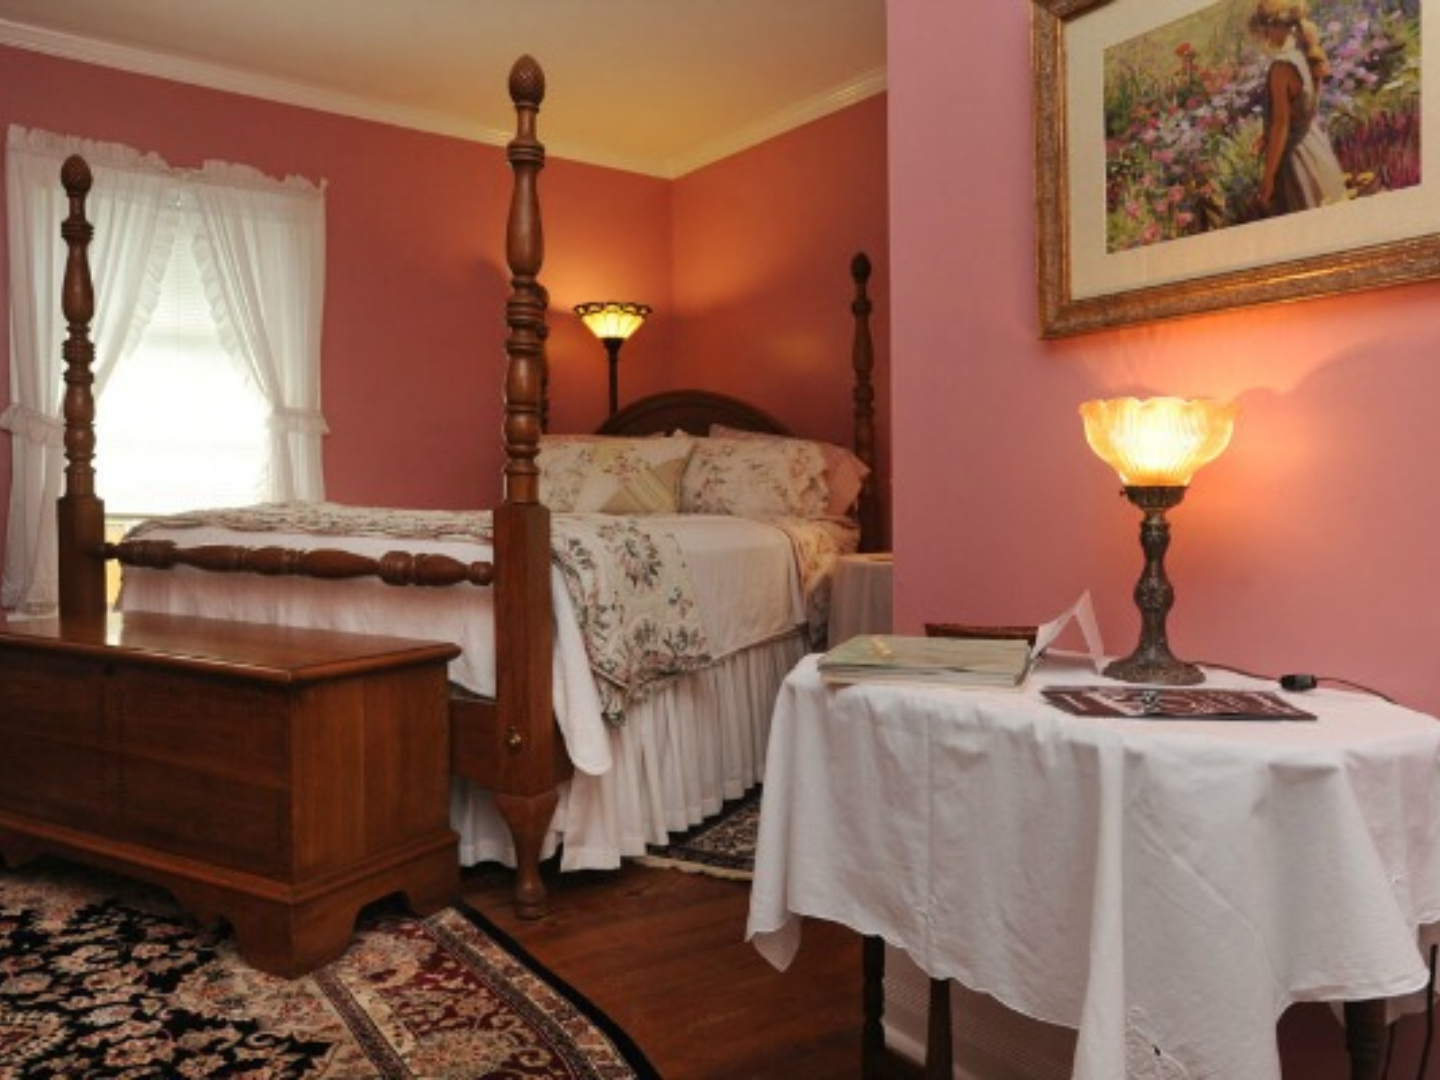 A bedroom with a bed in a room at Dry Ridge Inn Bed and Breakfast.